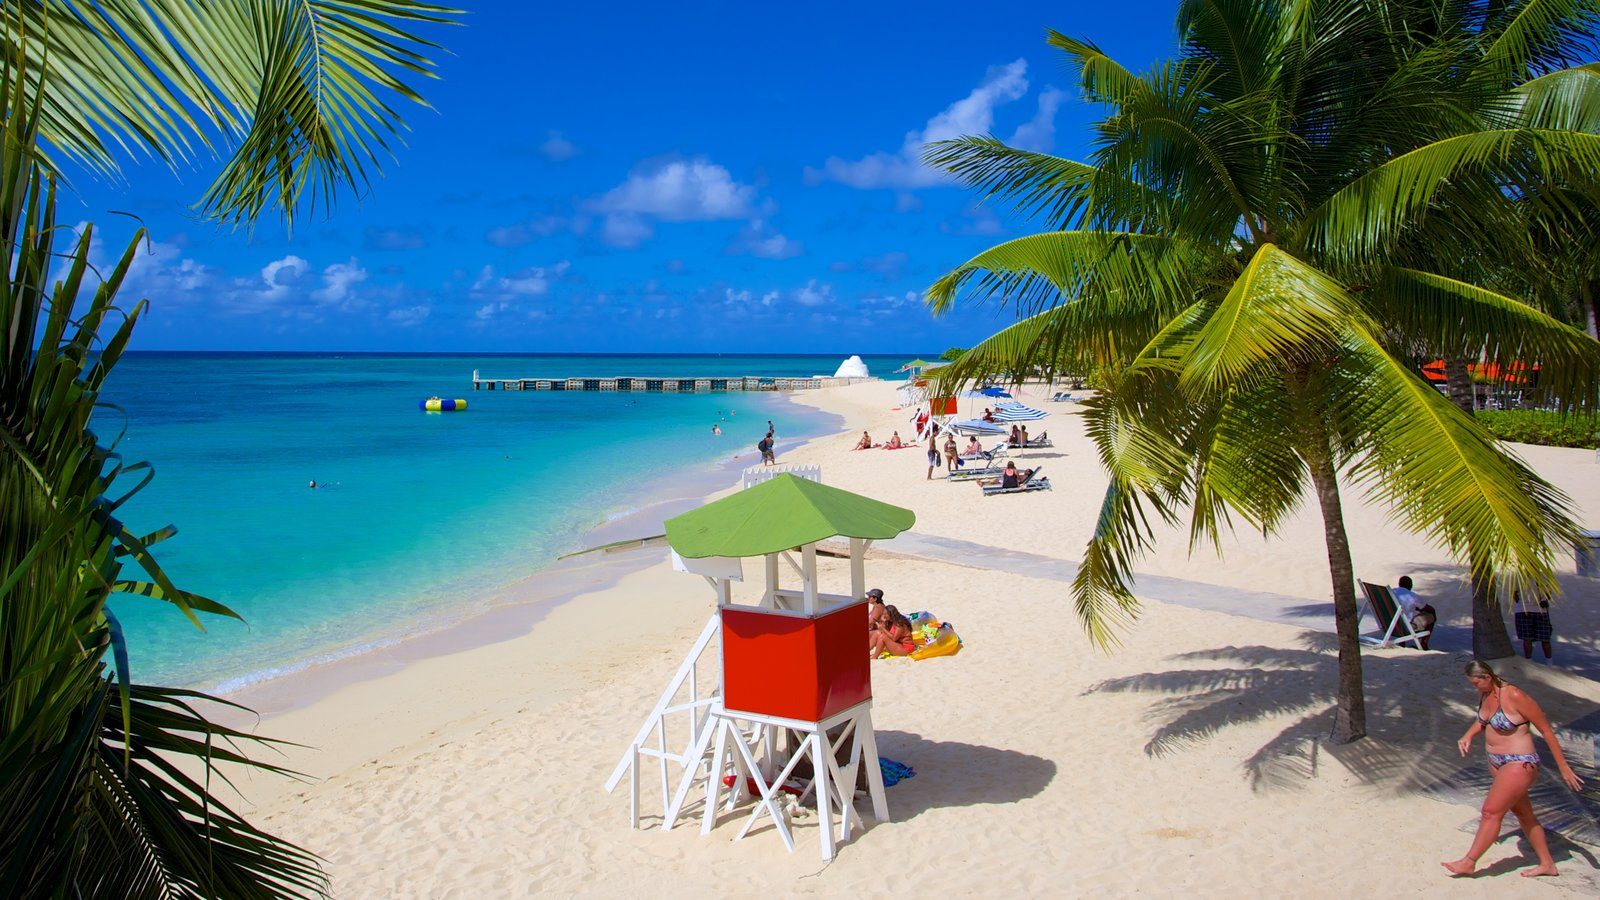 jamaican tourism This video explain about top tourist attractions in jamaica jamaica is an island country situated in the caribbean sea, comprising the third-largest island.